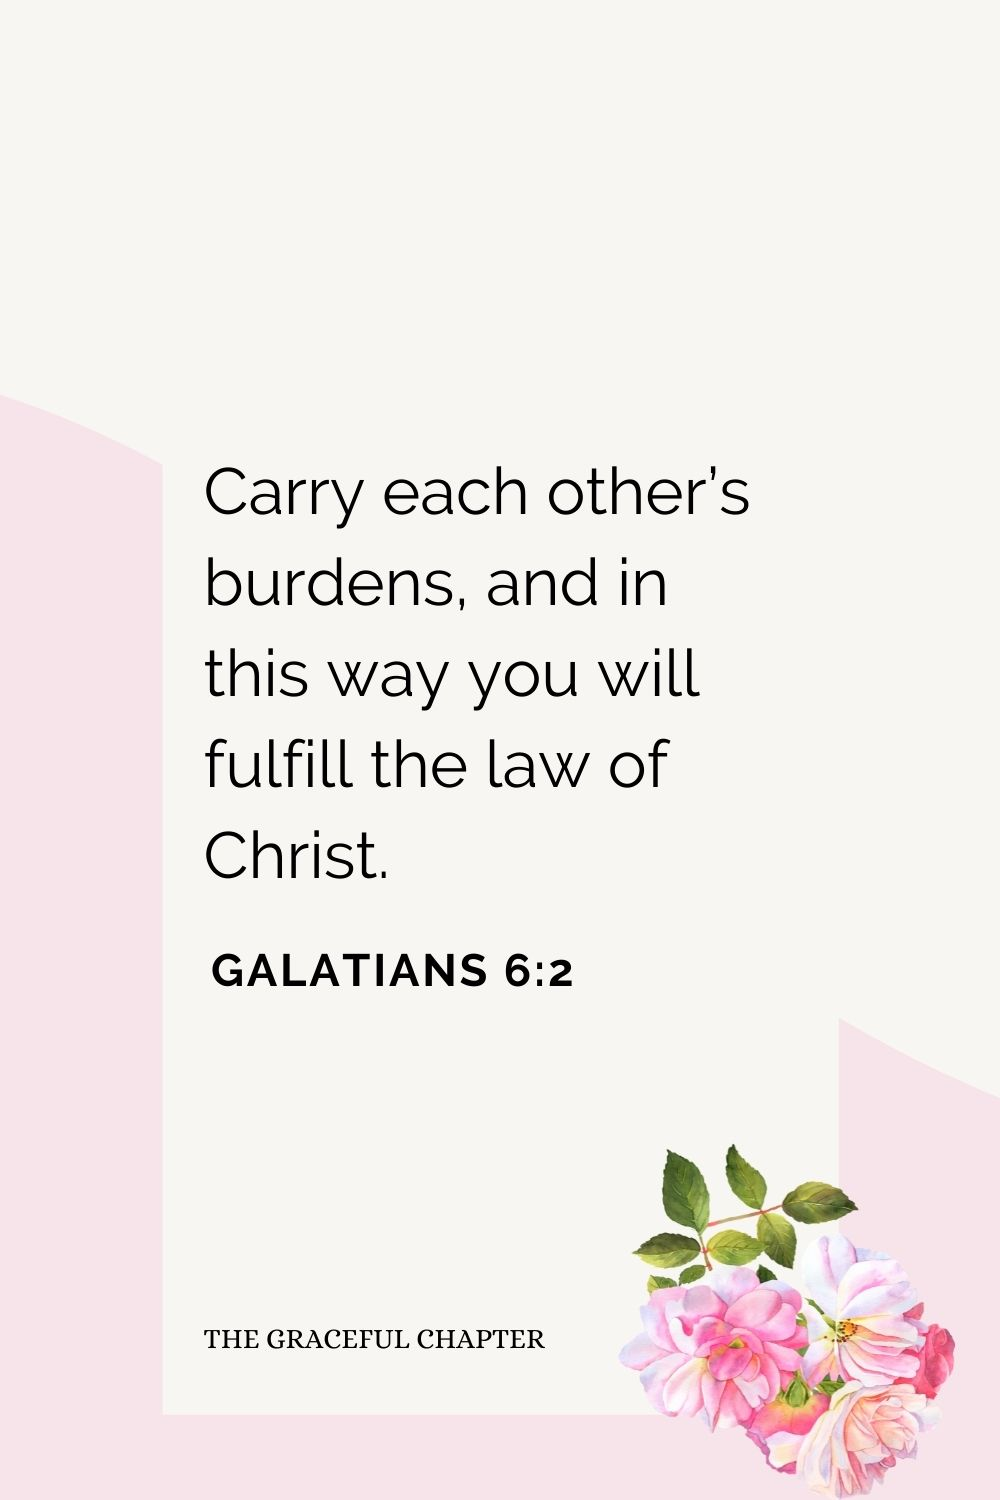 Carry each other's burdens, and in this way you will fulfill the law of Christ. Galatians 6:2